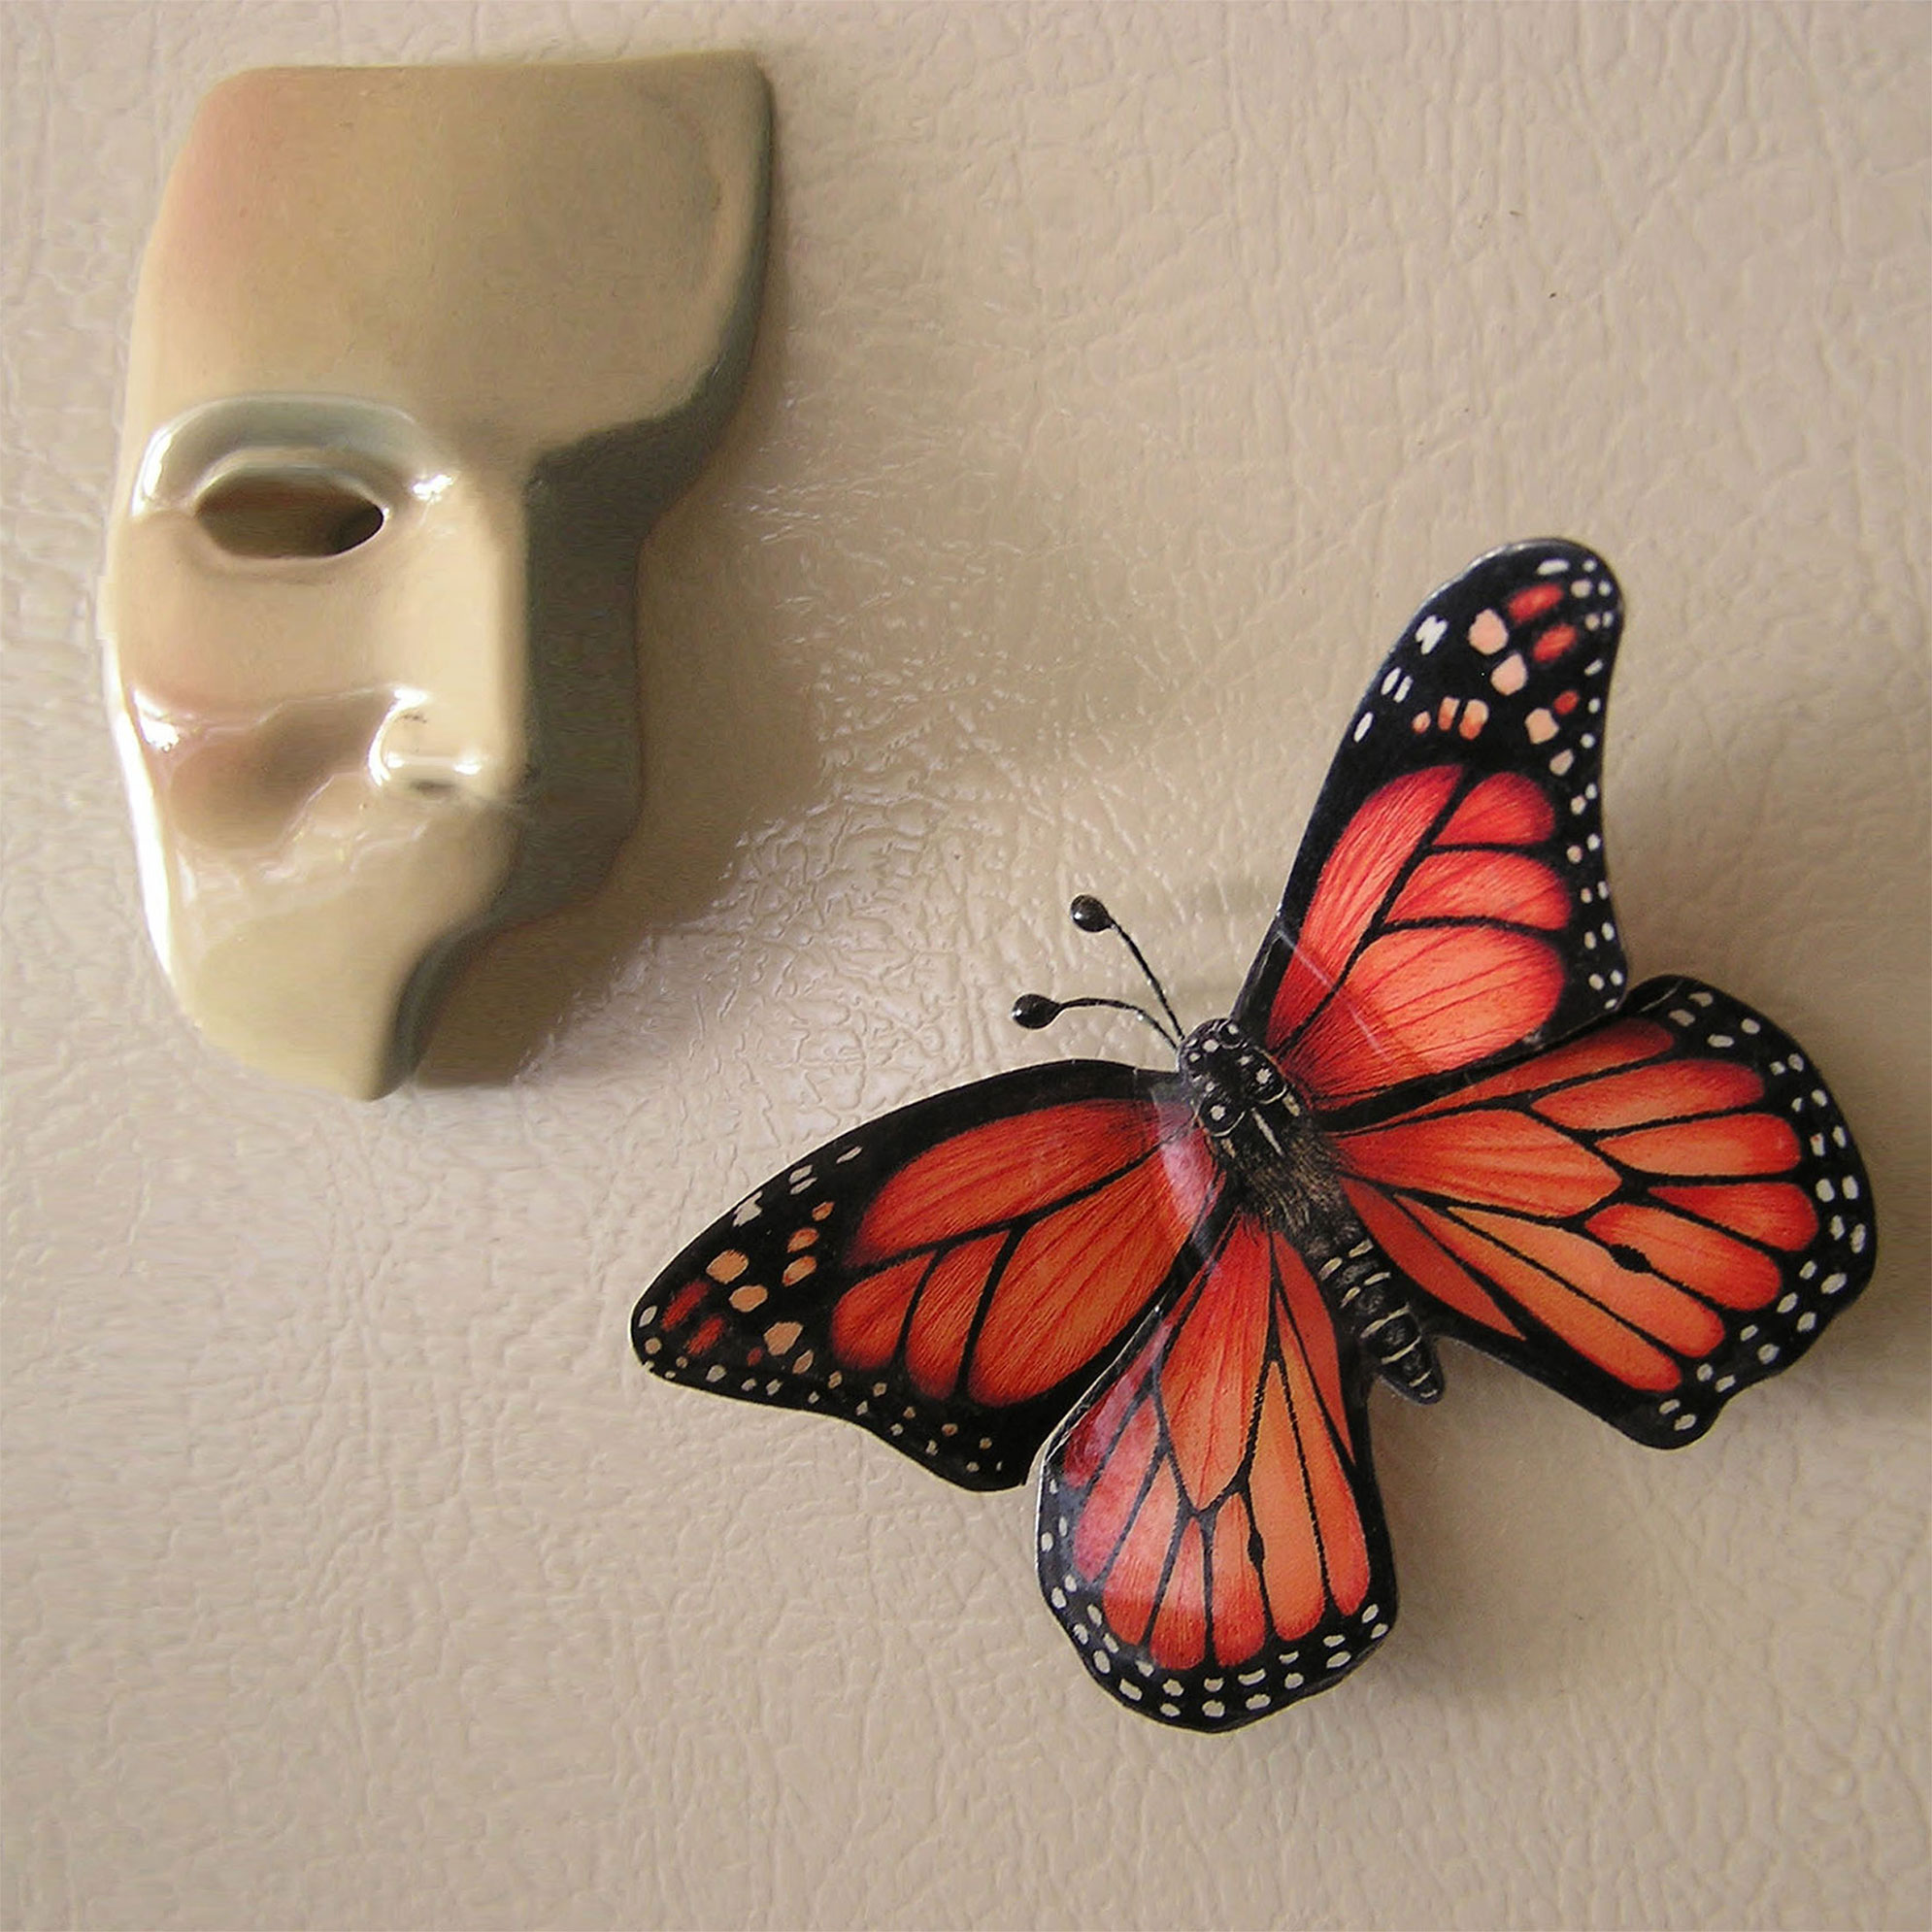 Butterfly with face mask